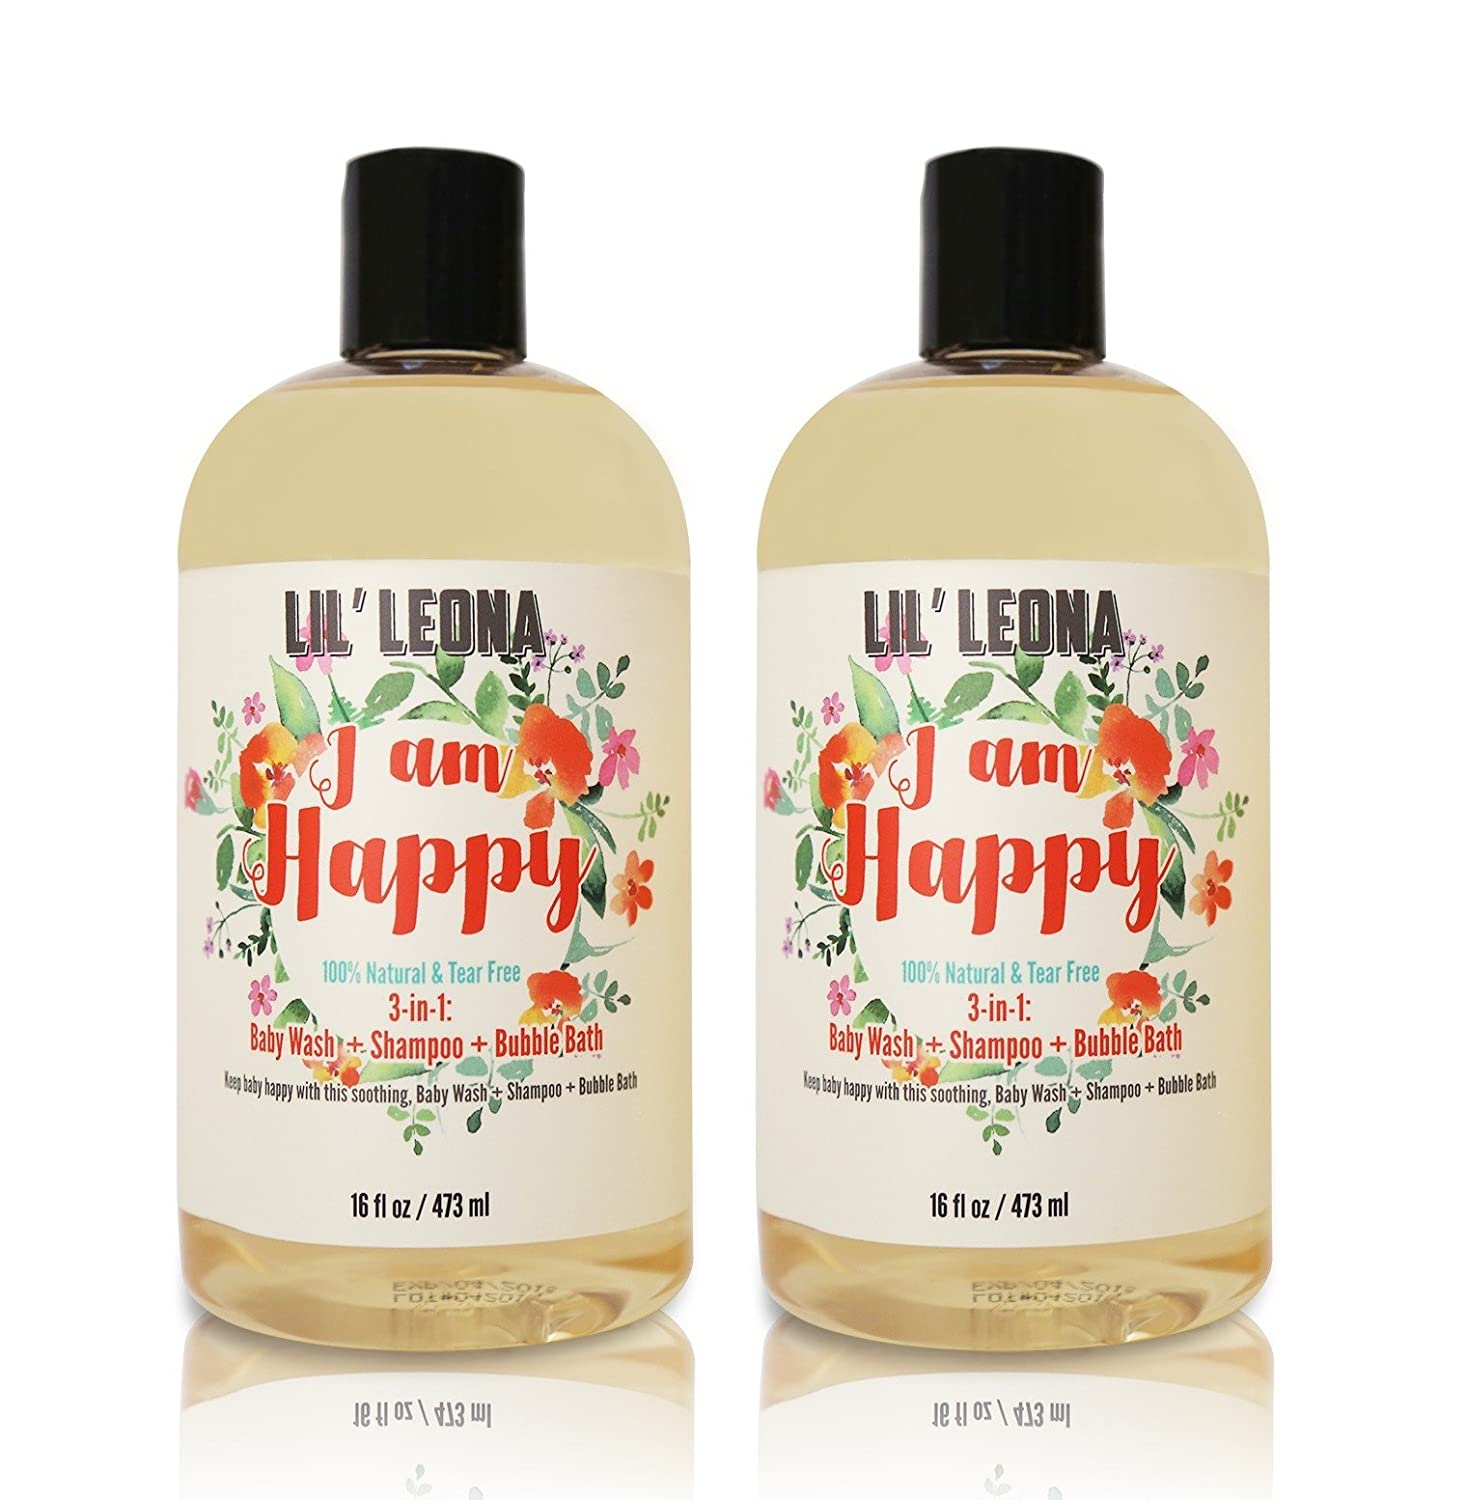 Amazon 3 in 1 baby shampoo bubble bath and body wash 16 oz amazon 3 in 1 baby shampoo bubble bath and body wash 16 oz 2 pack by lil leona baby gamestrikefo Image collections